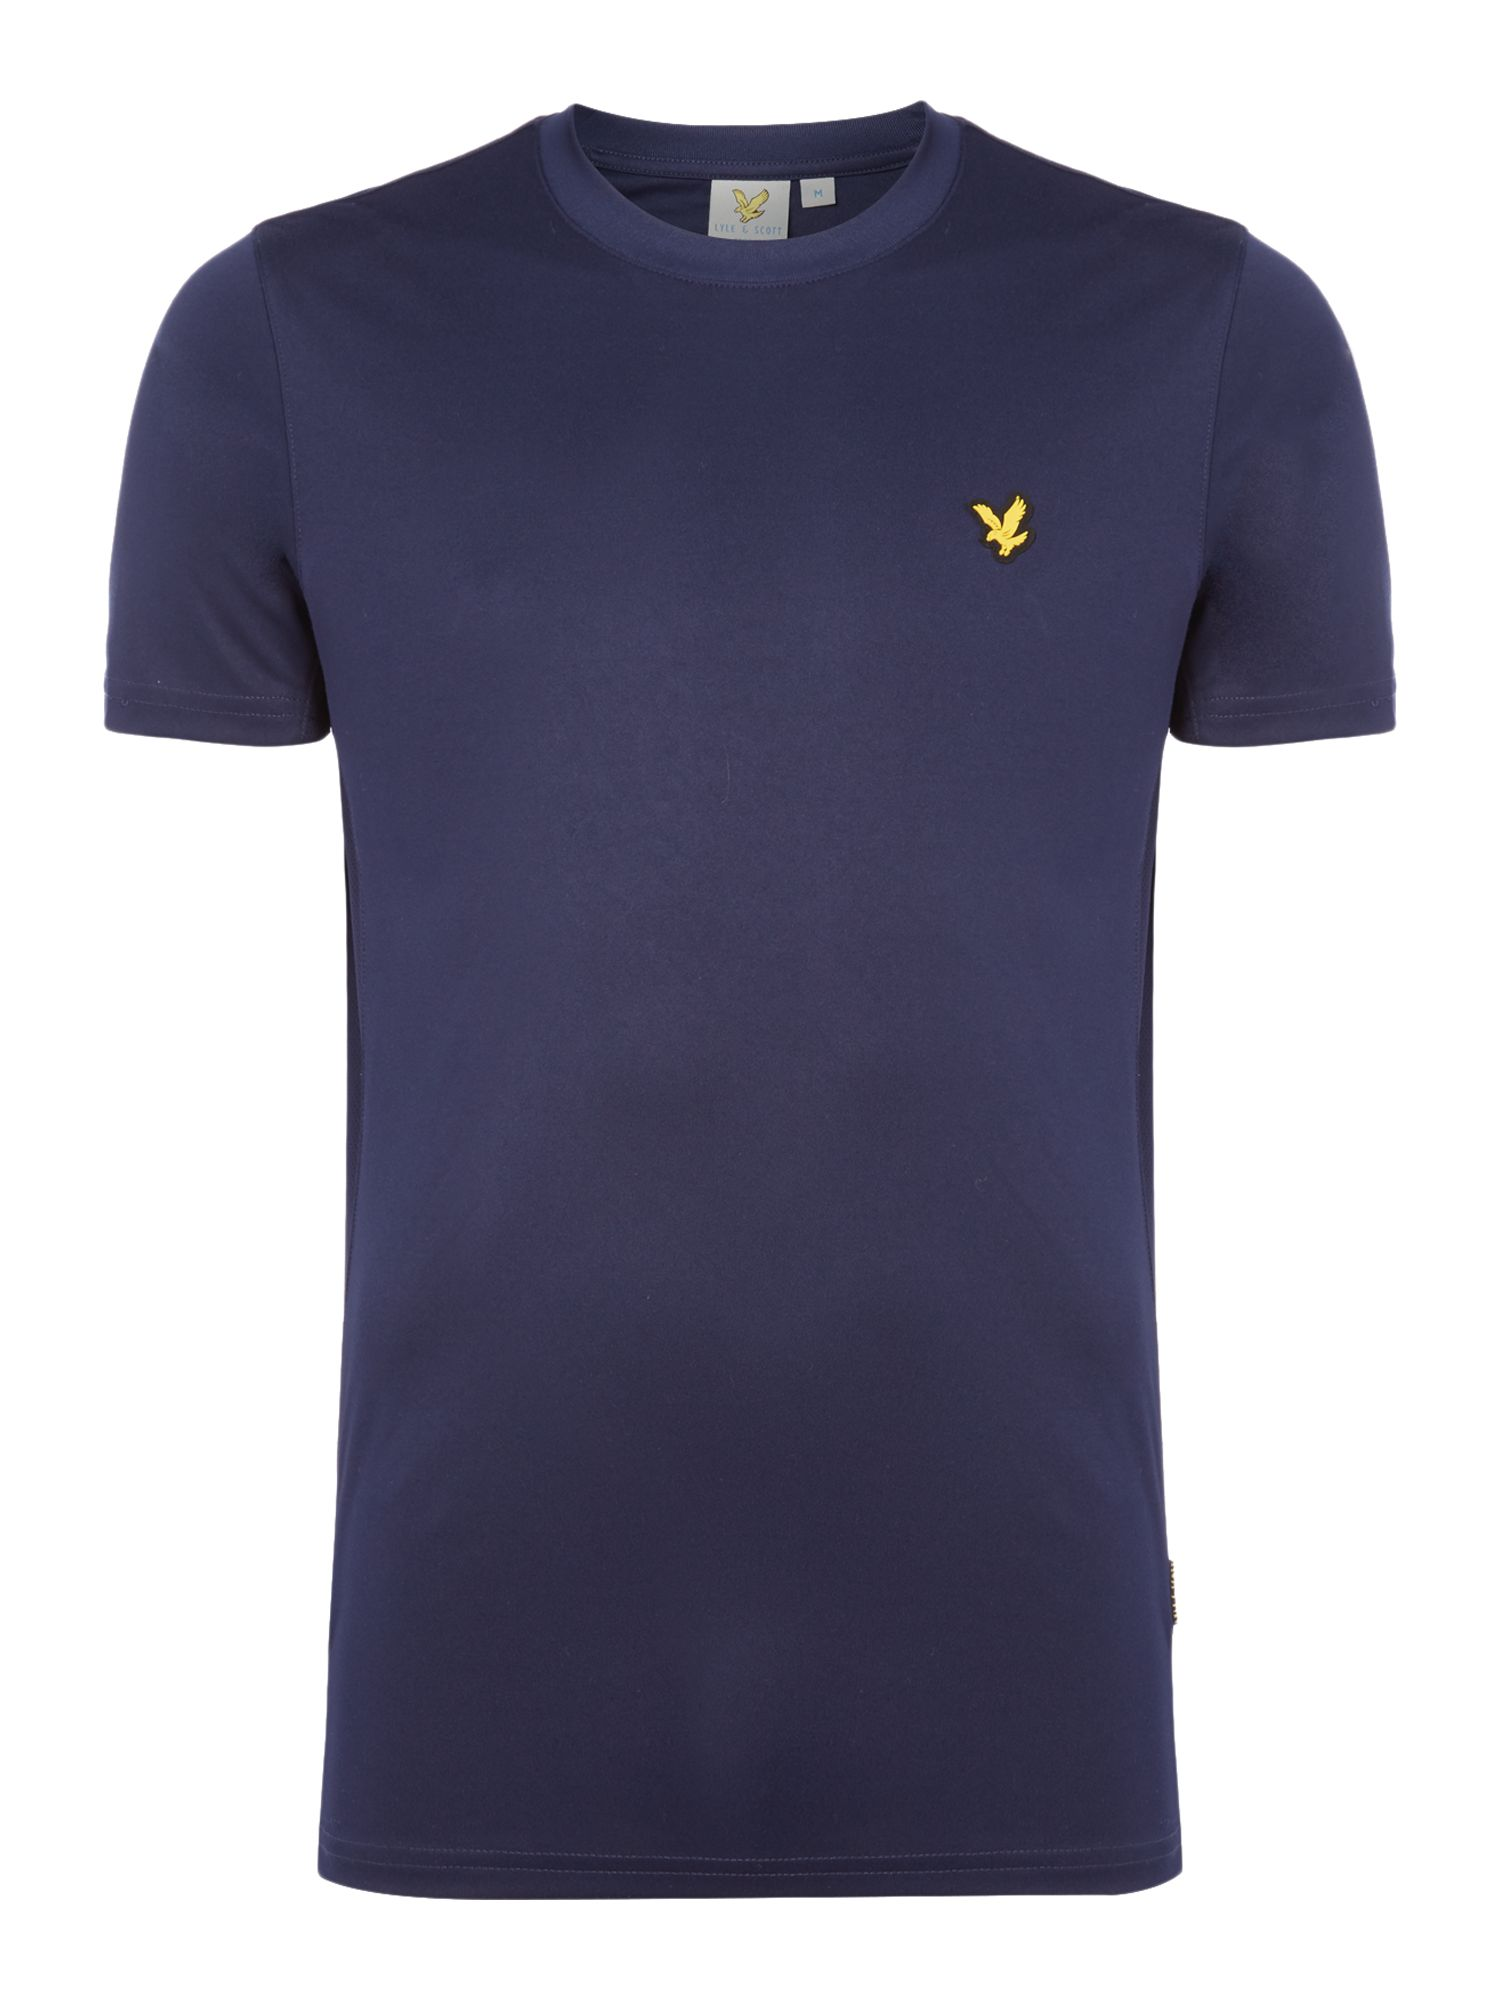 Men's Lyle and Scott Sports Crew-Neck Short-Sleeve T-Shirt, Blue